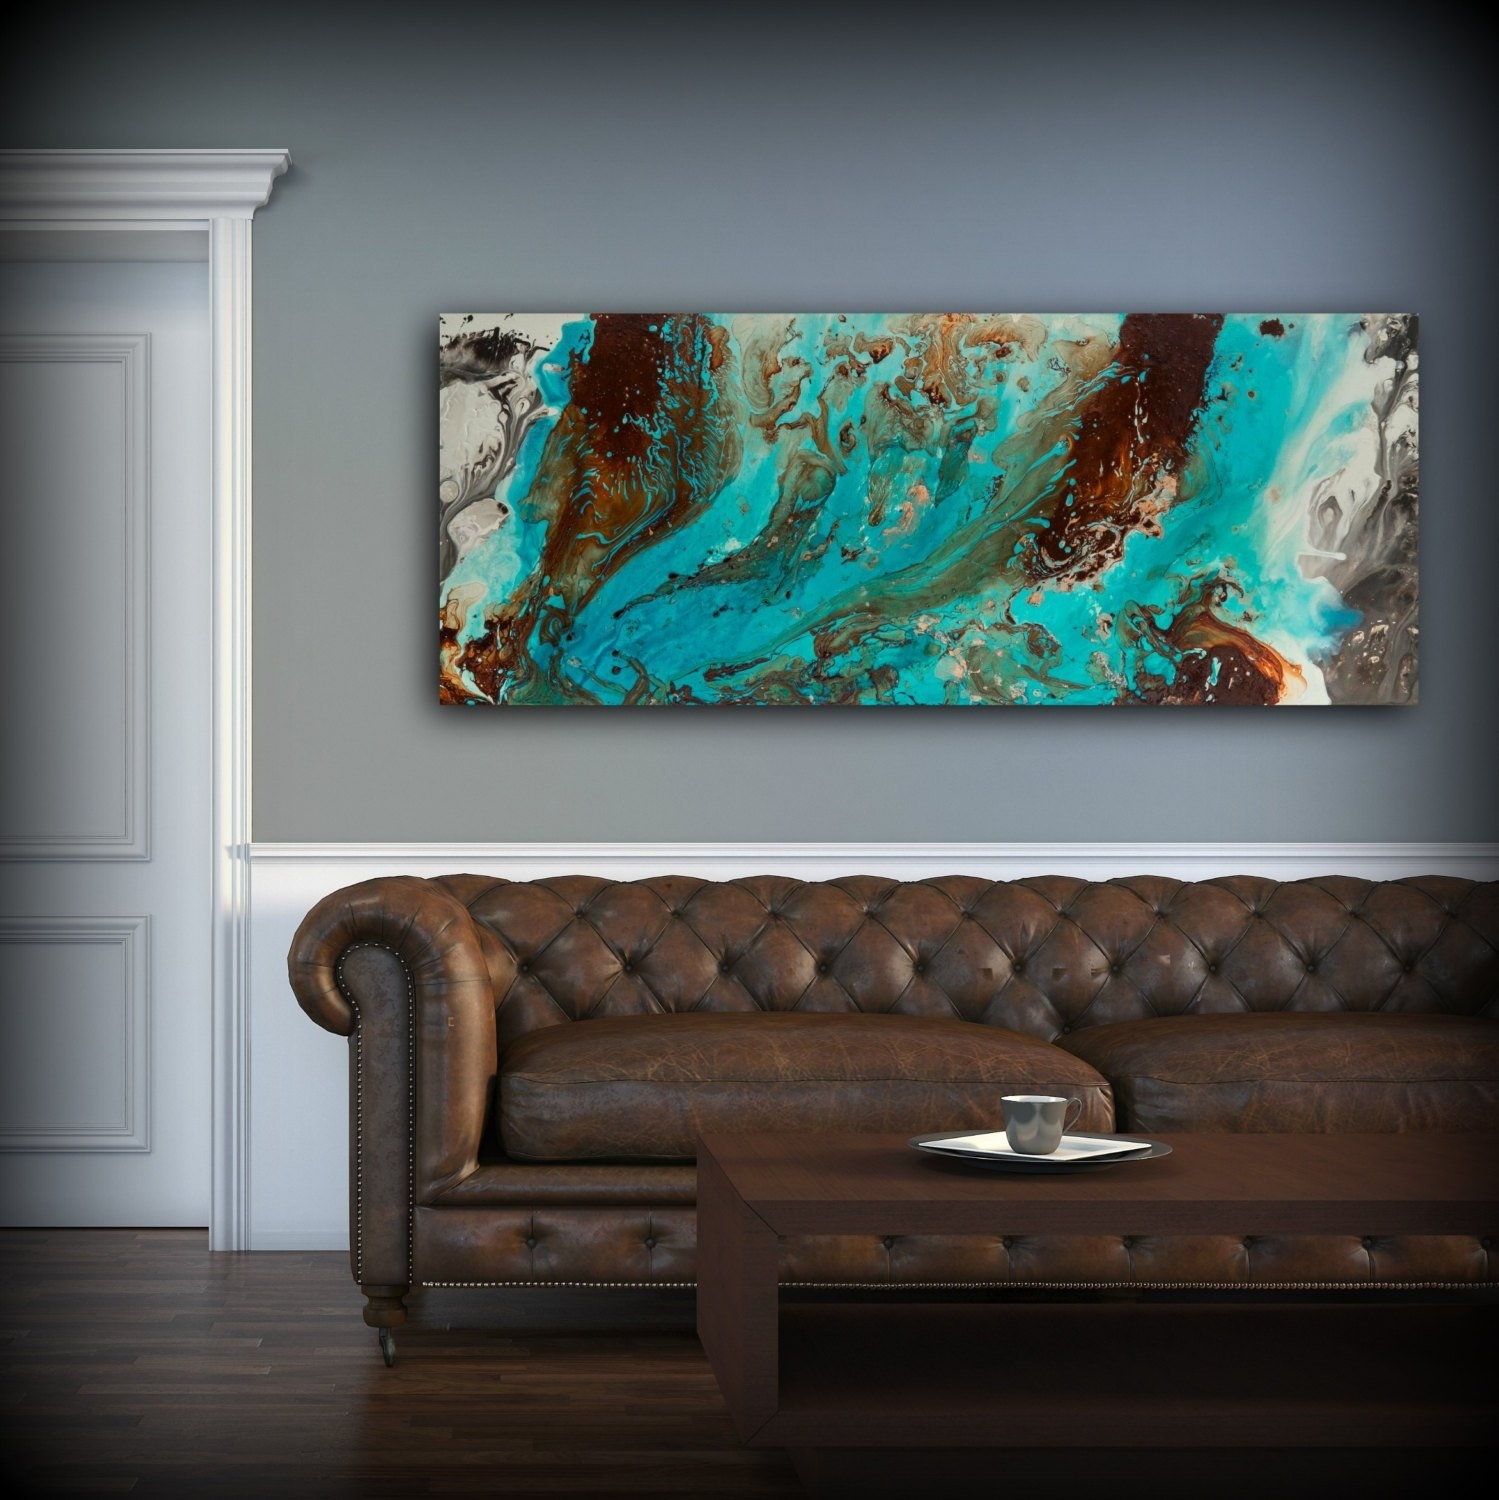 Aqua Print, Blue And Brown Wall Art Decor, Colourful, Bohemian Art Pertaining To Newest Teal And Brown Wall Art (View 1 of 20)